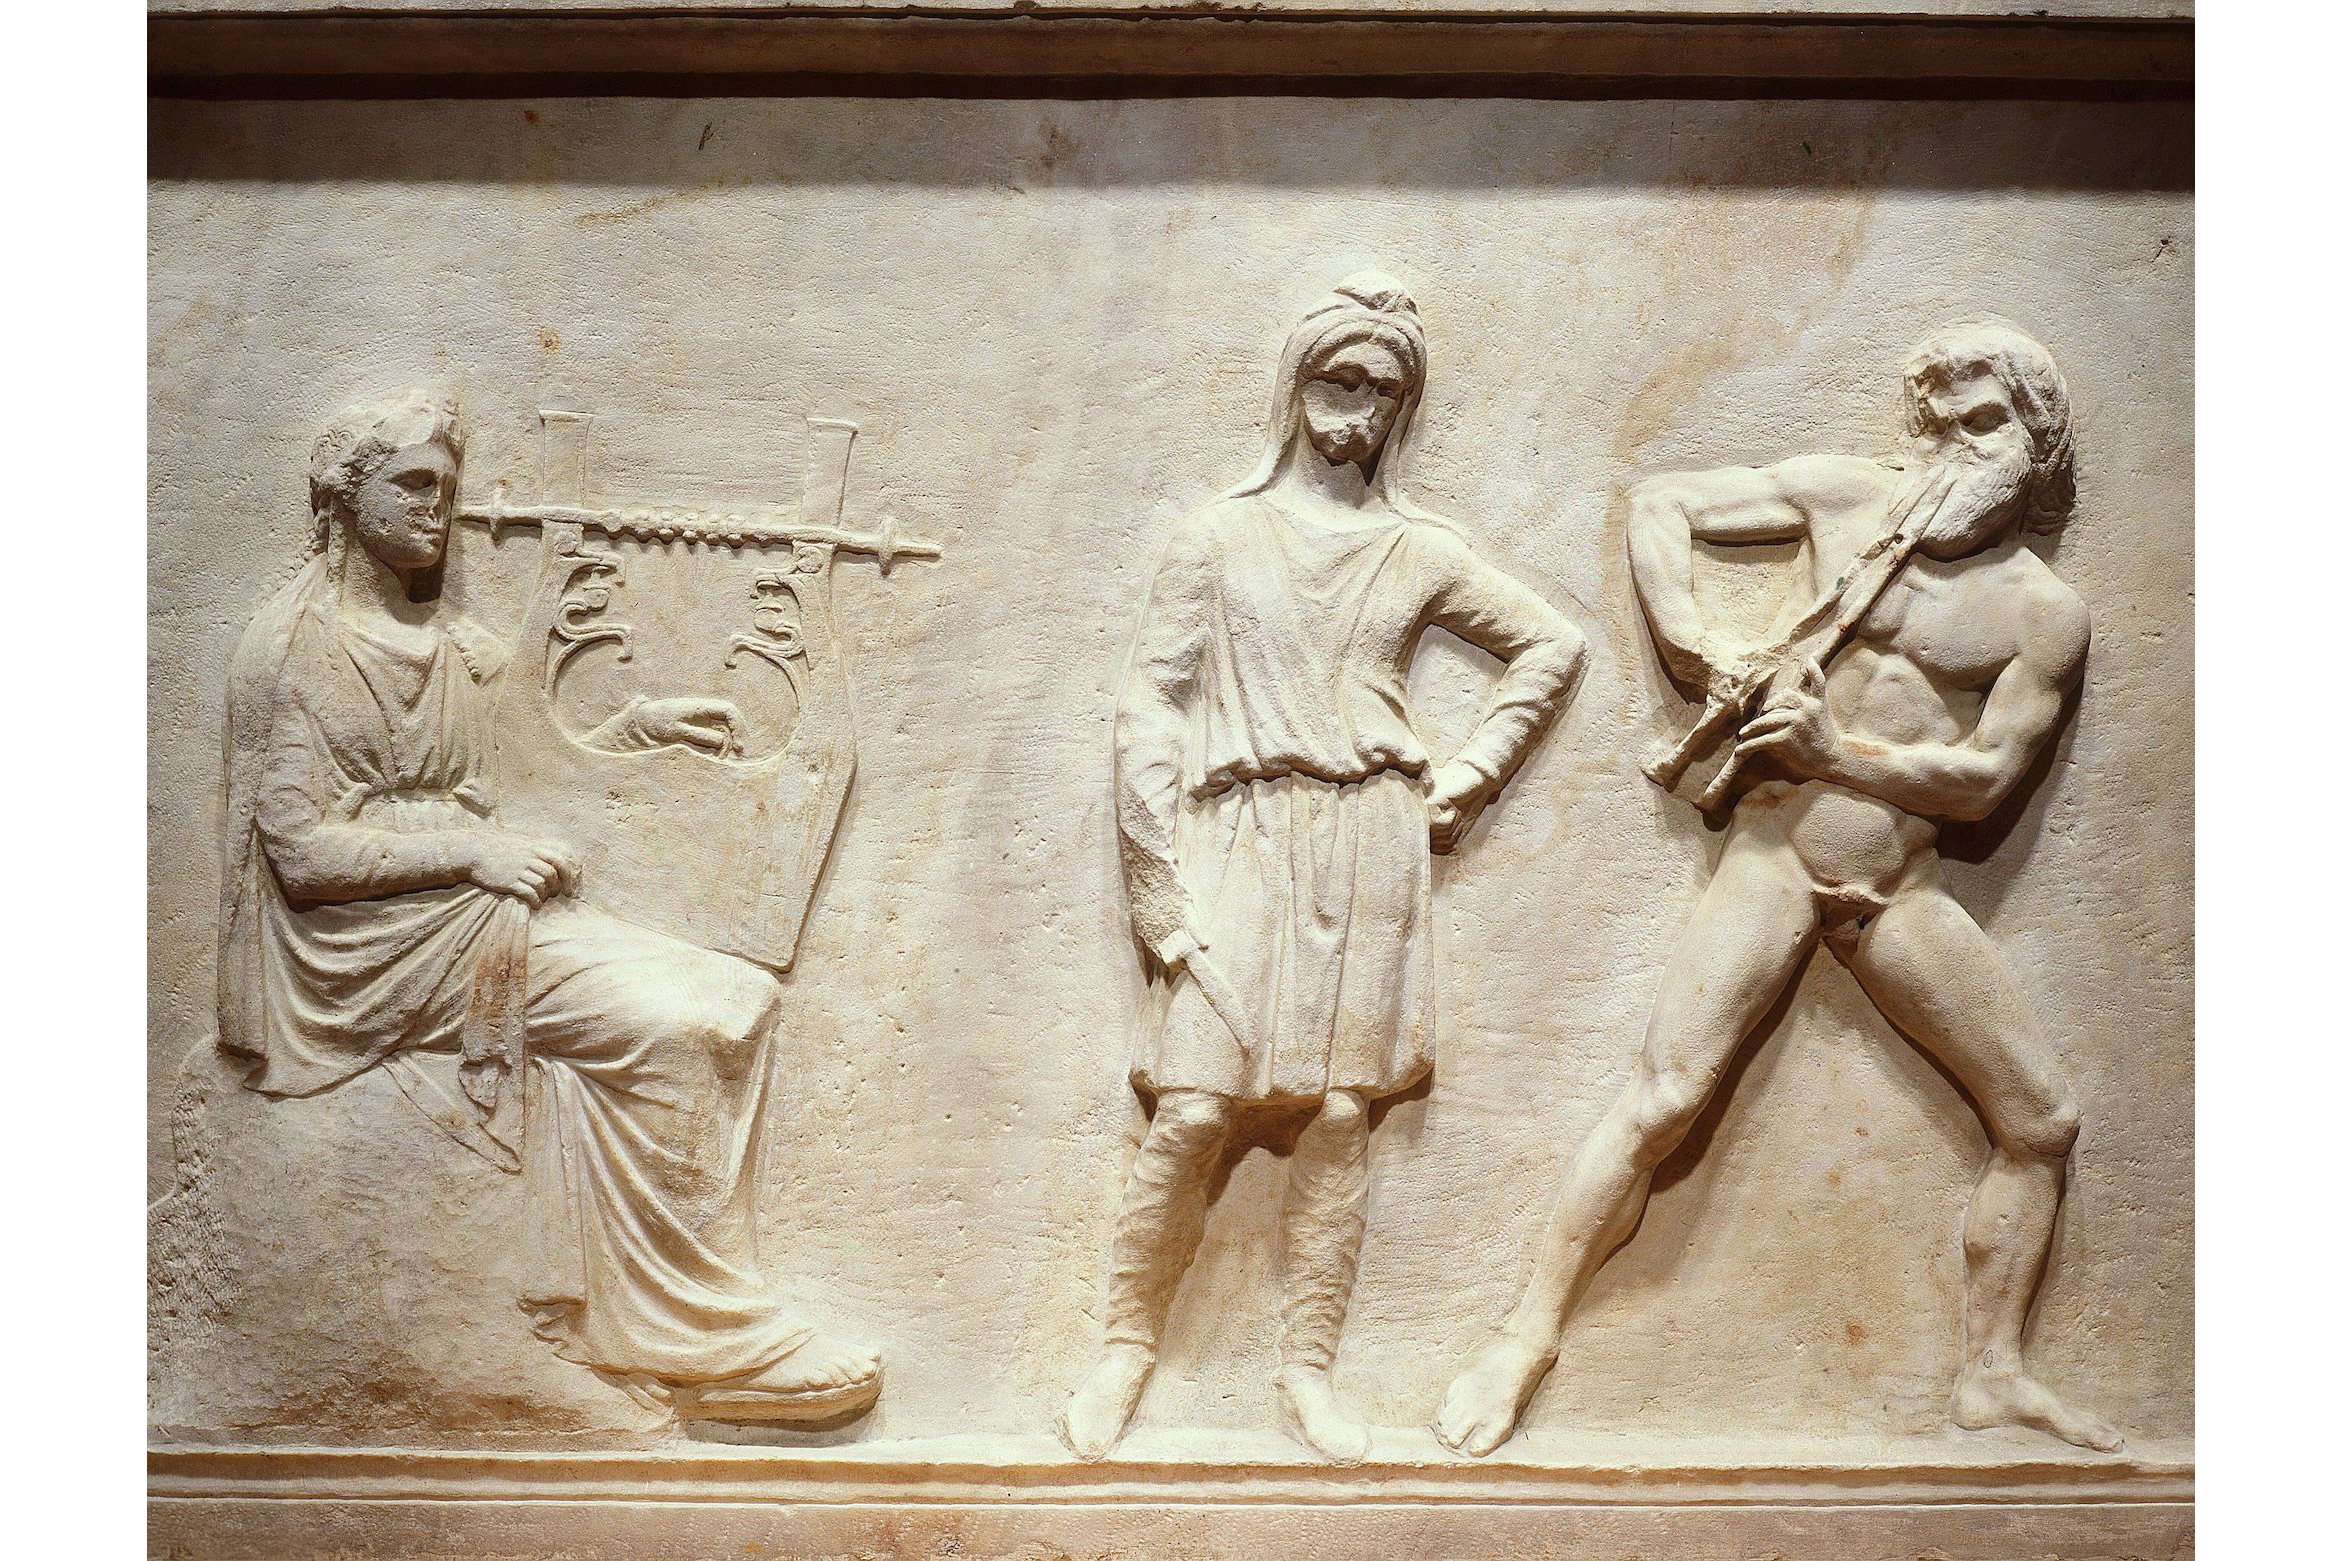 Musical contest of Apollo and Marsyas, relief, statue pedestal, c. 320 BC, attributed to Praxiteles